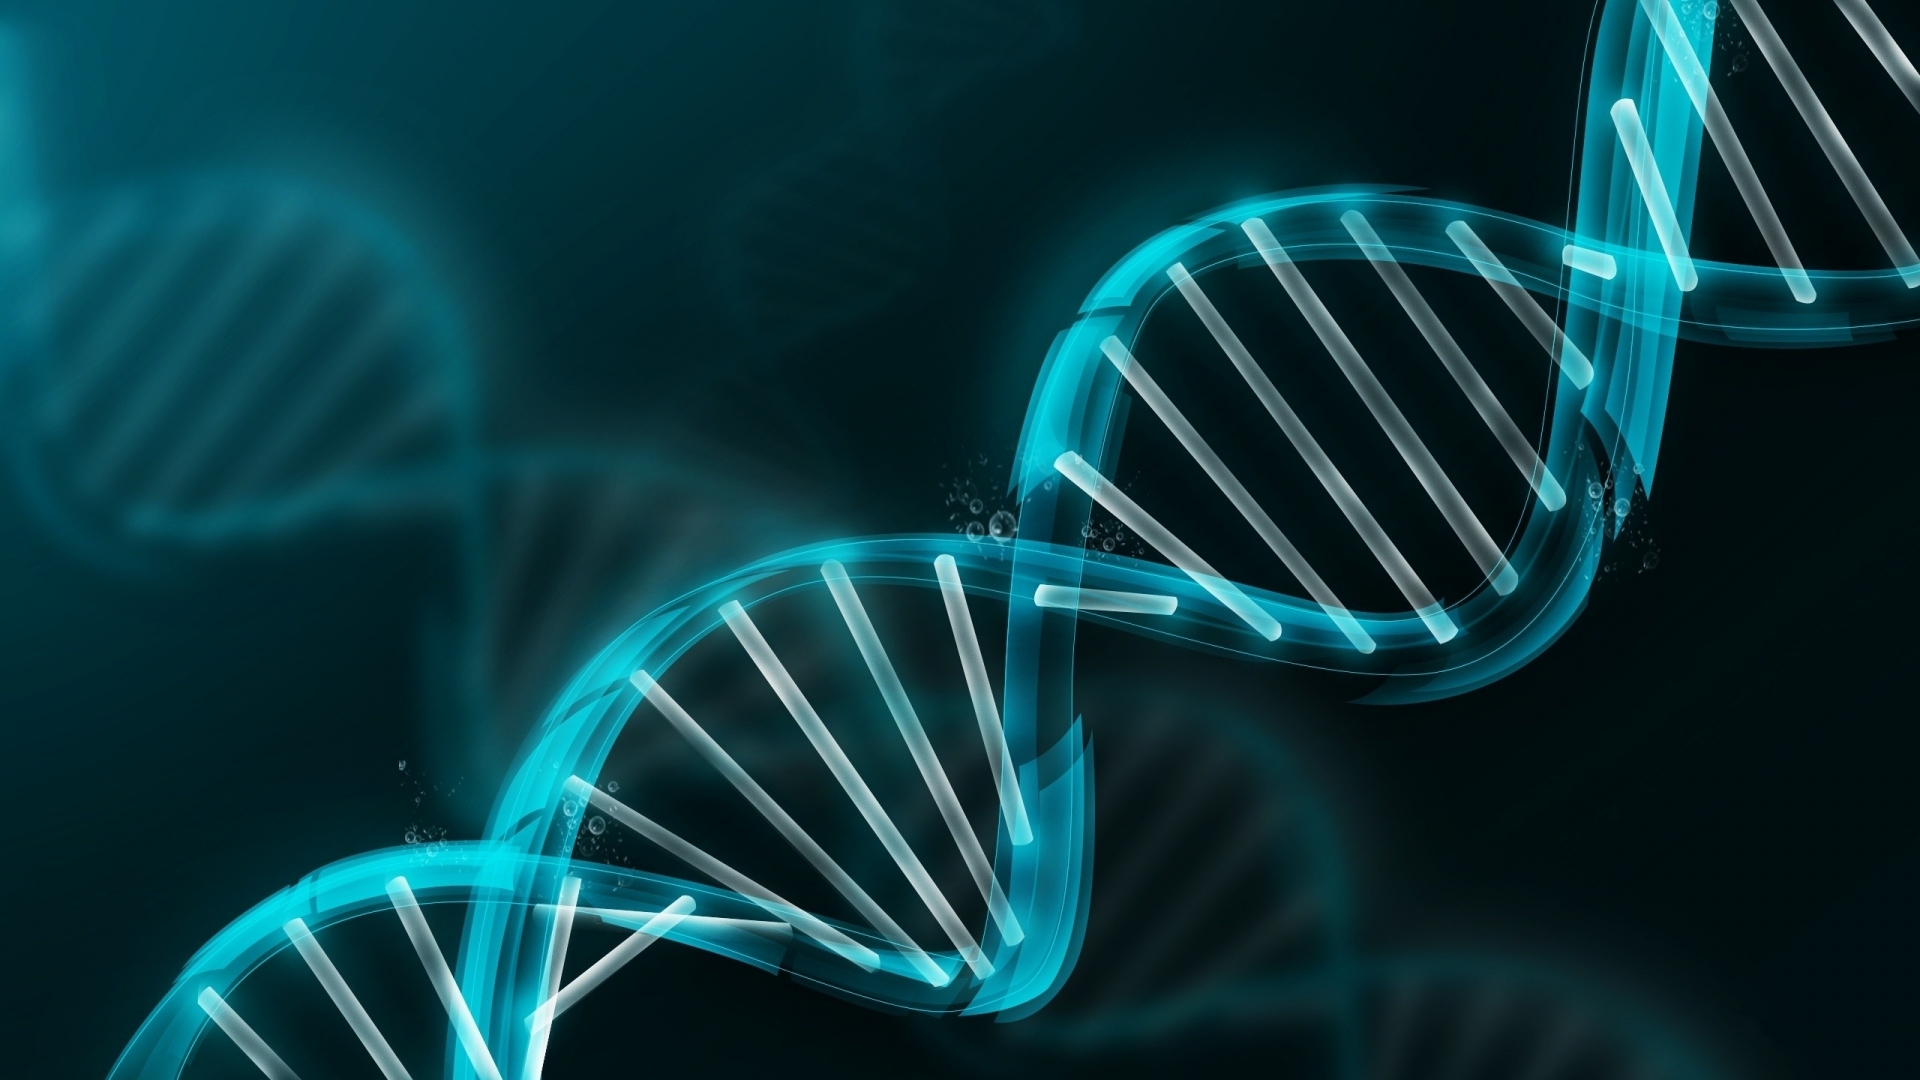 abstract-molecule-dna-x-wallpaper-wp3602192